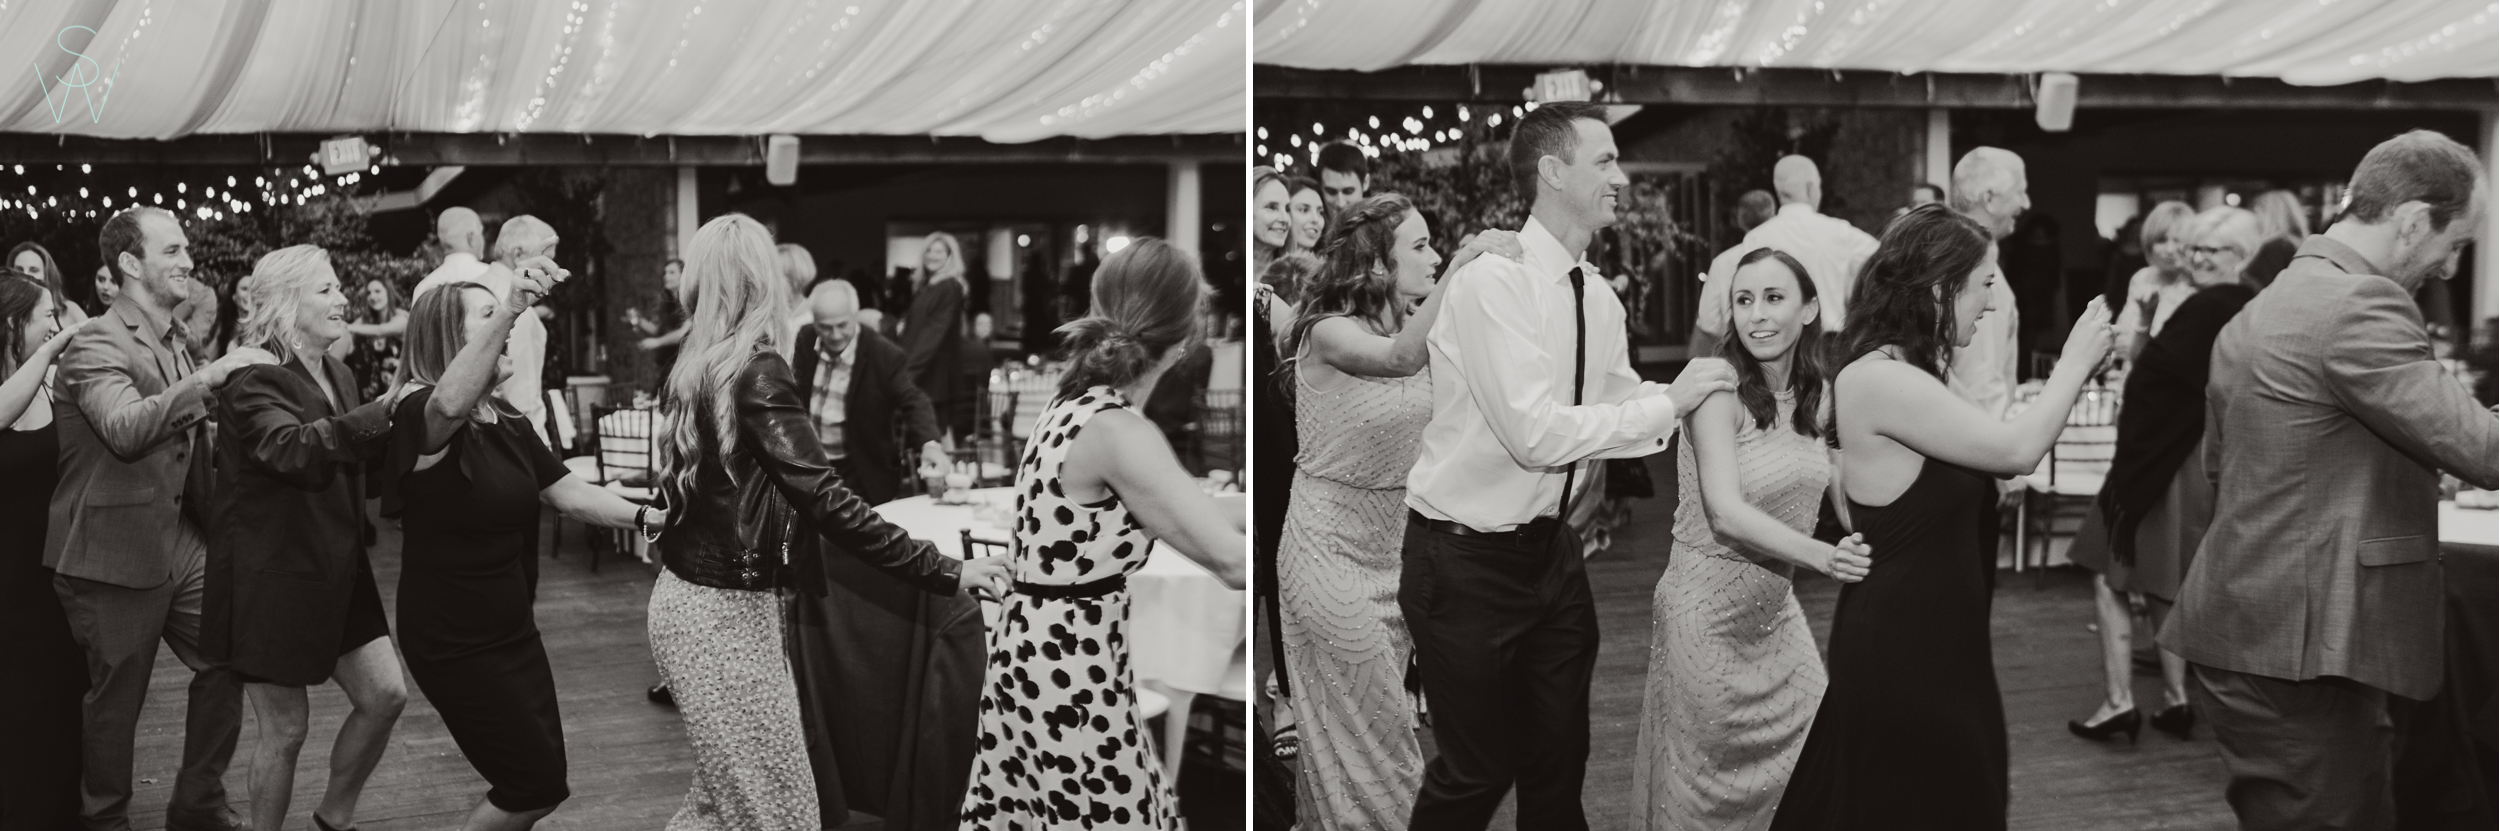 239Calamigos.ranch.shewanders.wedding.conga.line.photography.JPG